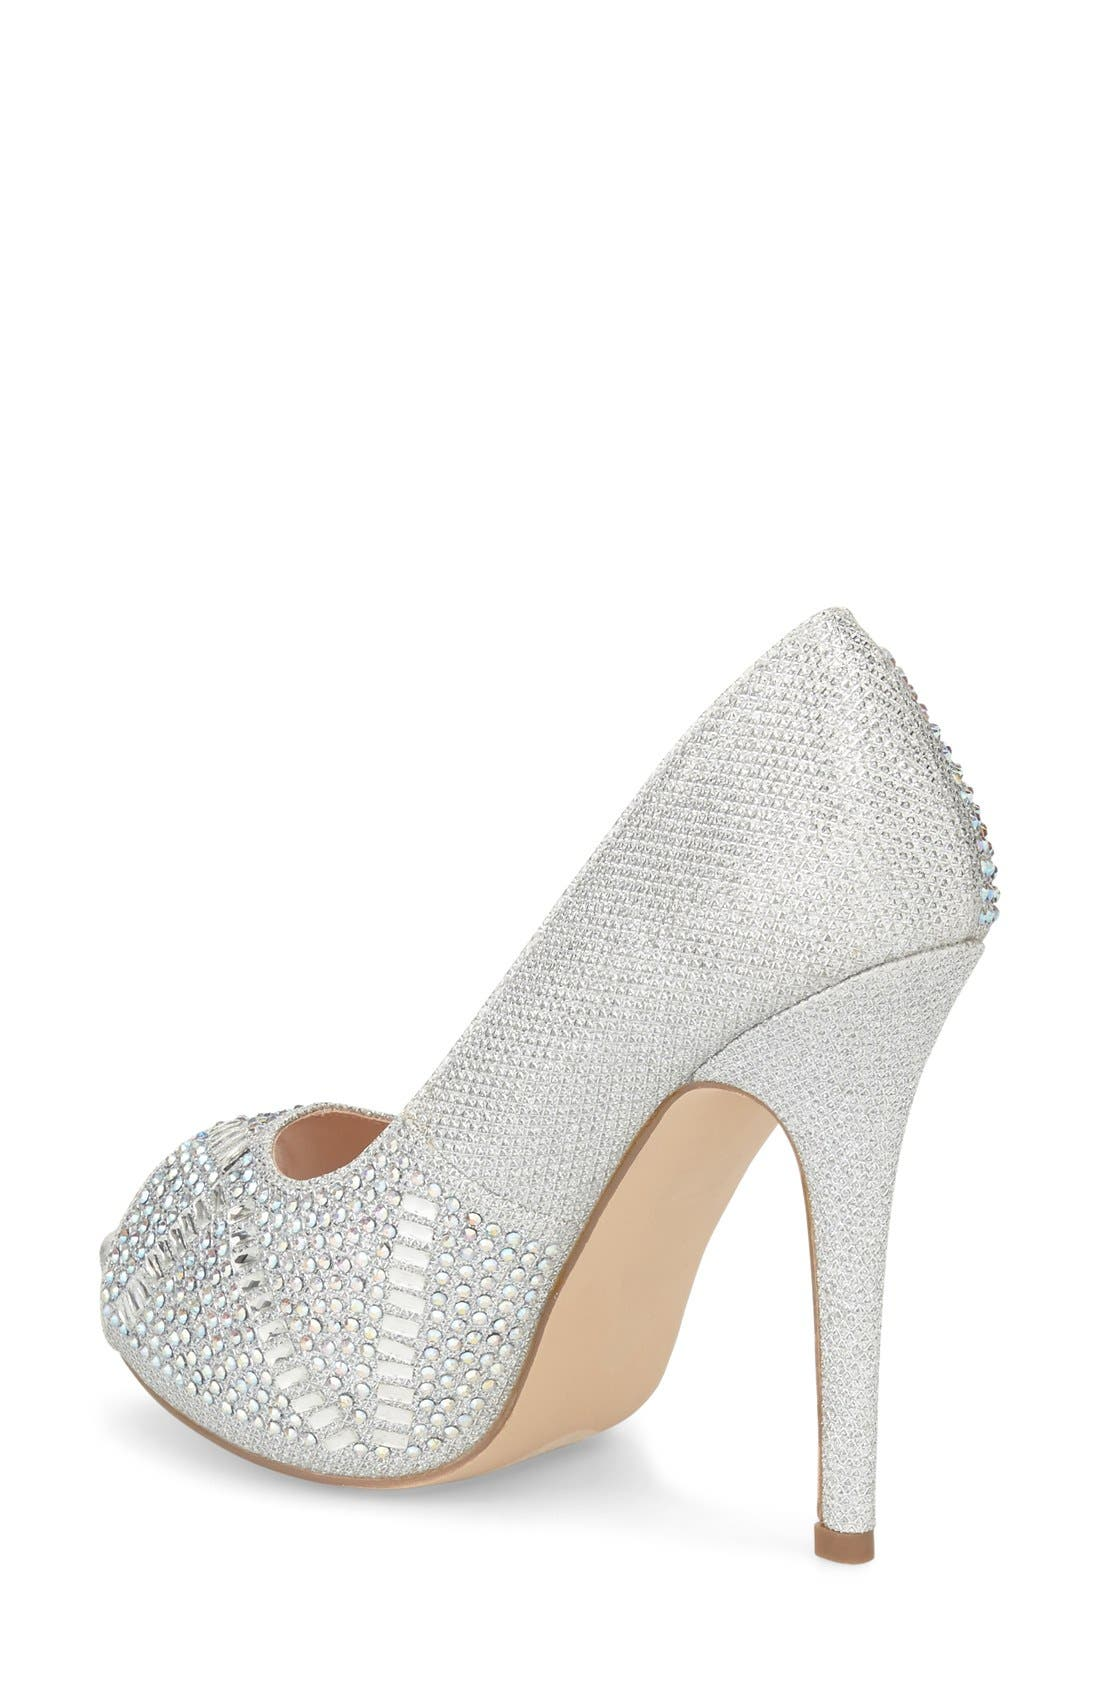 Elissa - 3 Peep Toe Pump,                             Alternate thumbnail 5, color,